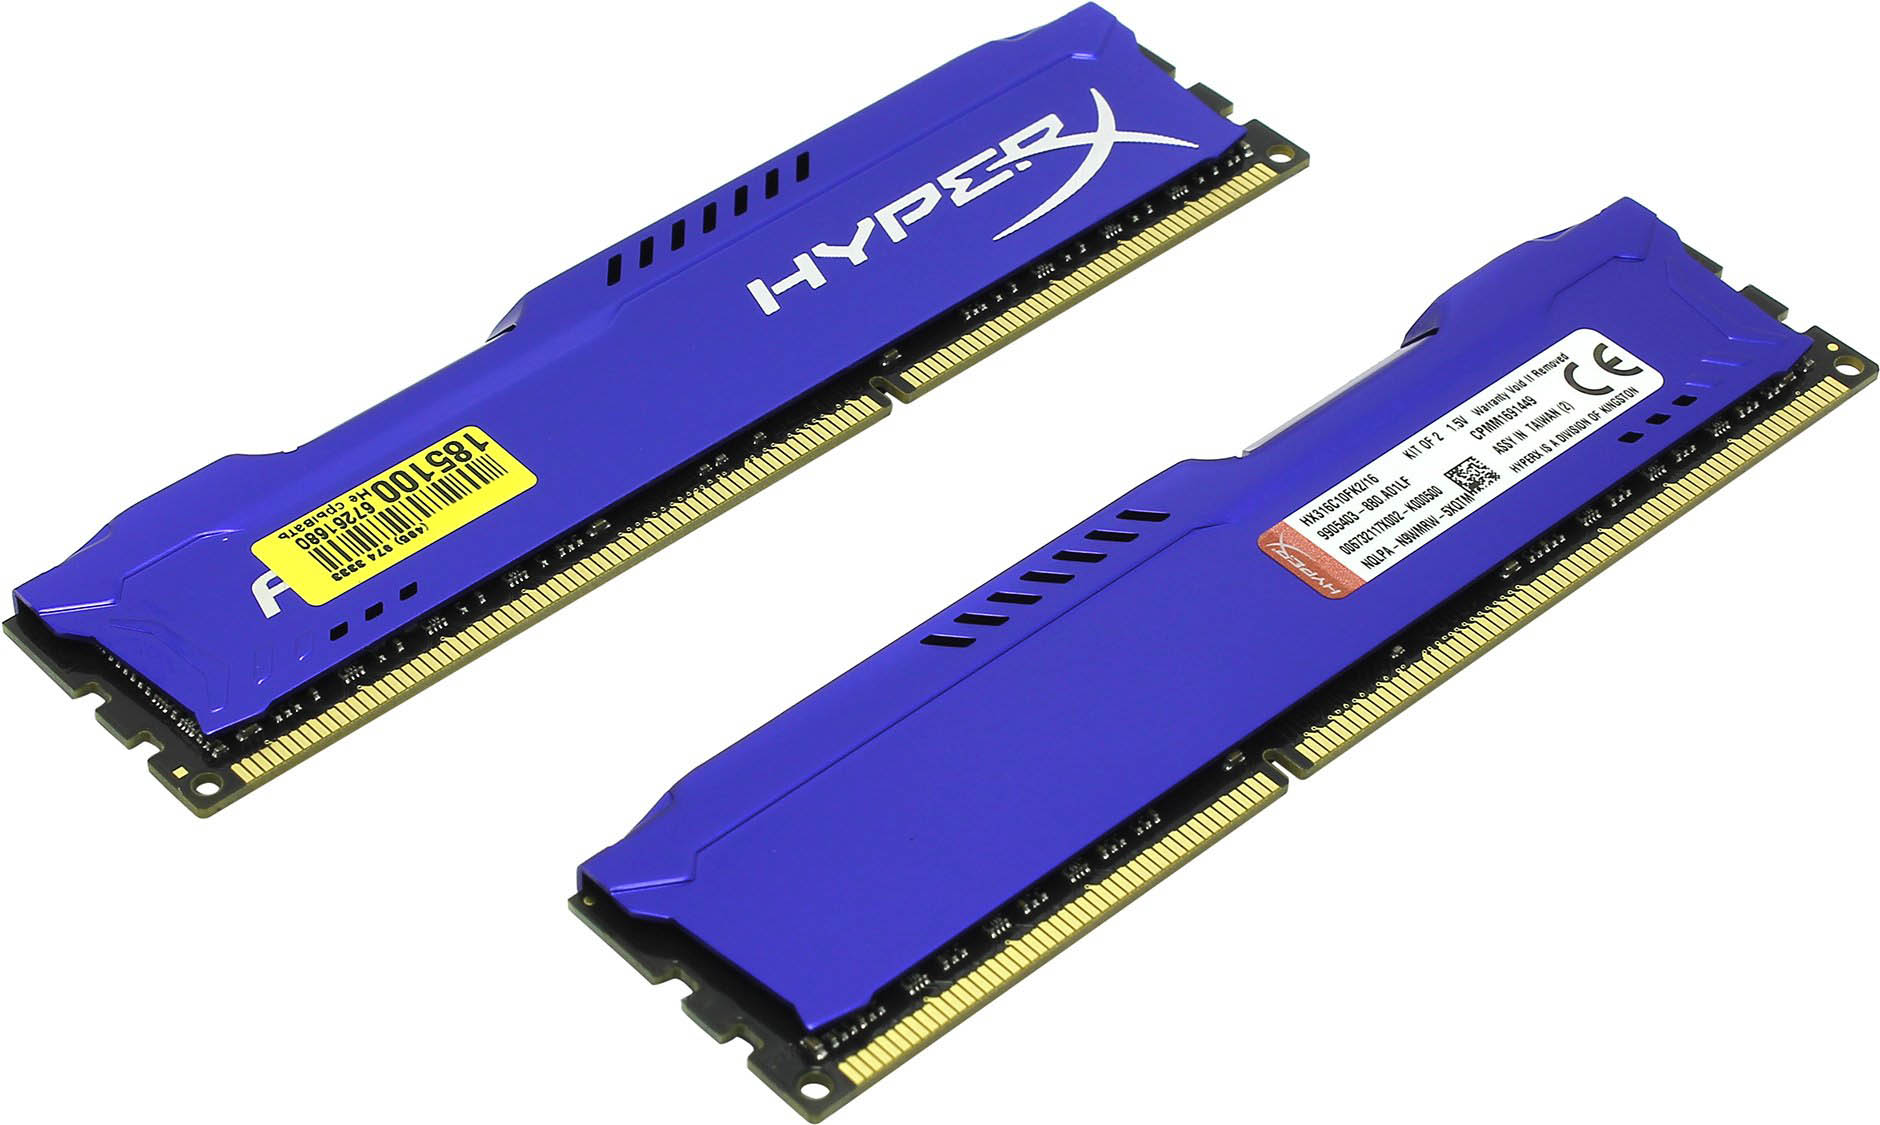 Mémoire Kingston 2x 4Go DDR3 PC12800 1600 MHz Fury HyperX CL10, informatique Reunion 974, Futur Réunion informatique